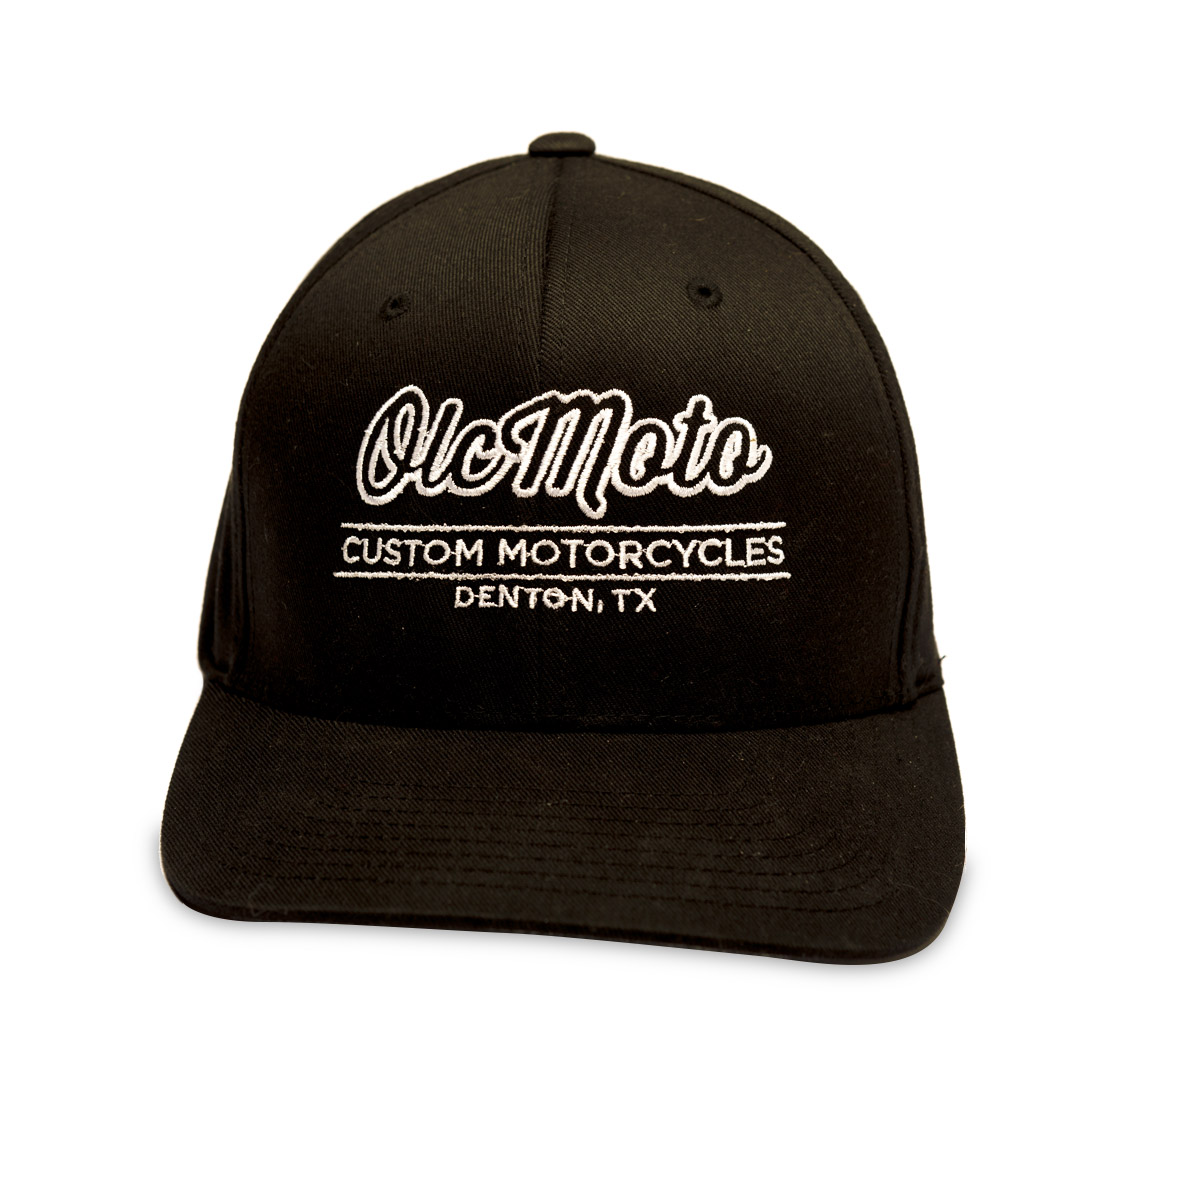 OLCMOTO Flexfit black hat - otherlifecycles